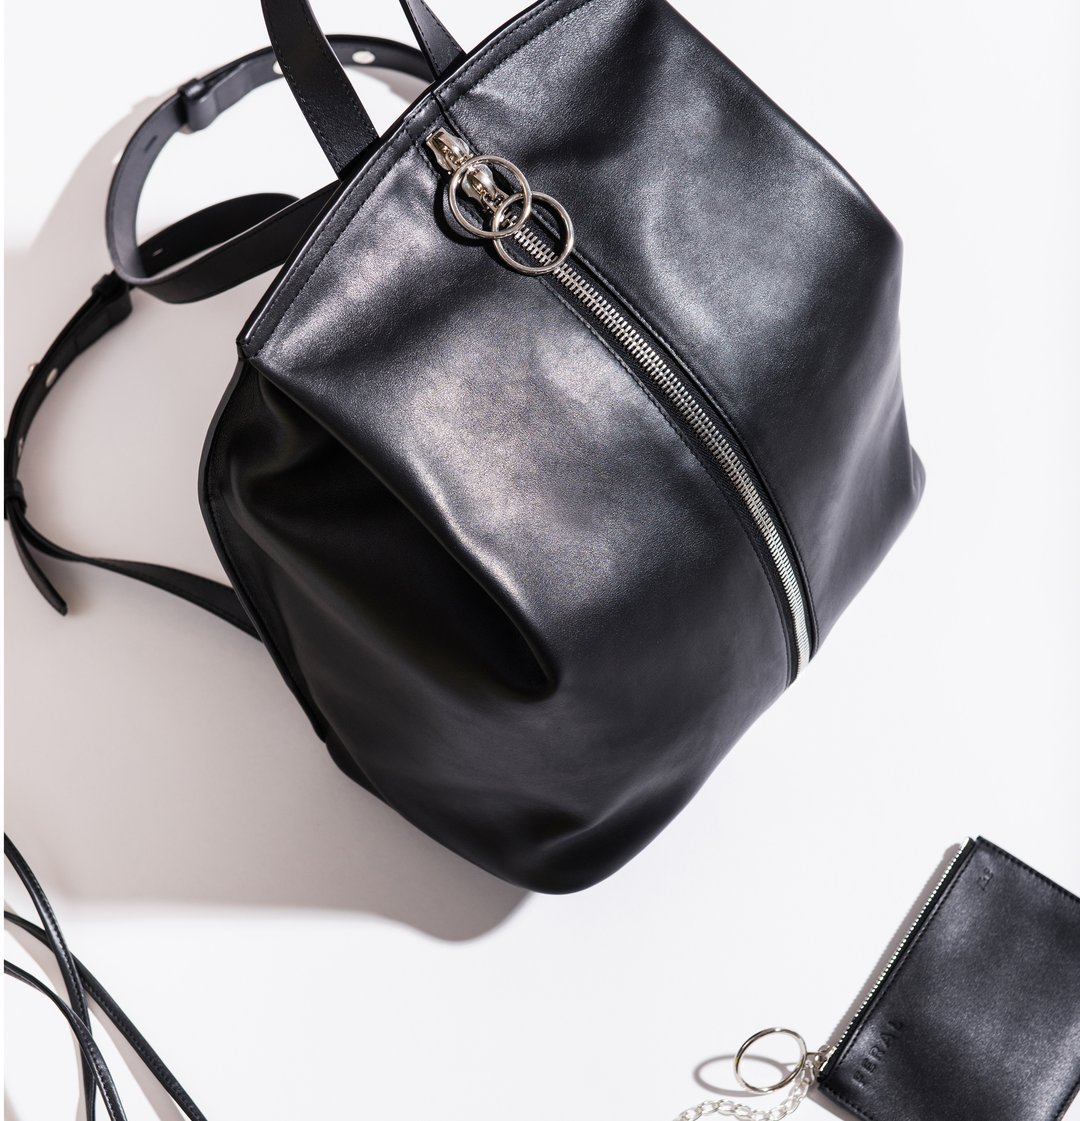 Designer Hand bags from FERAL